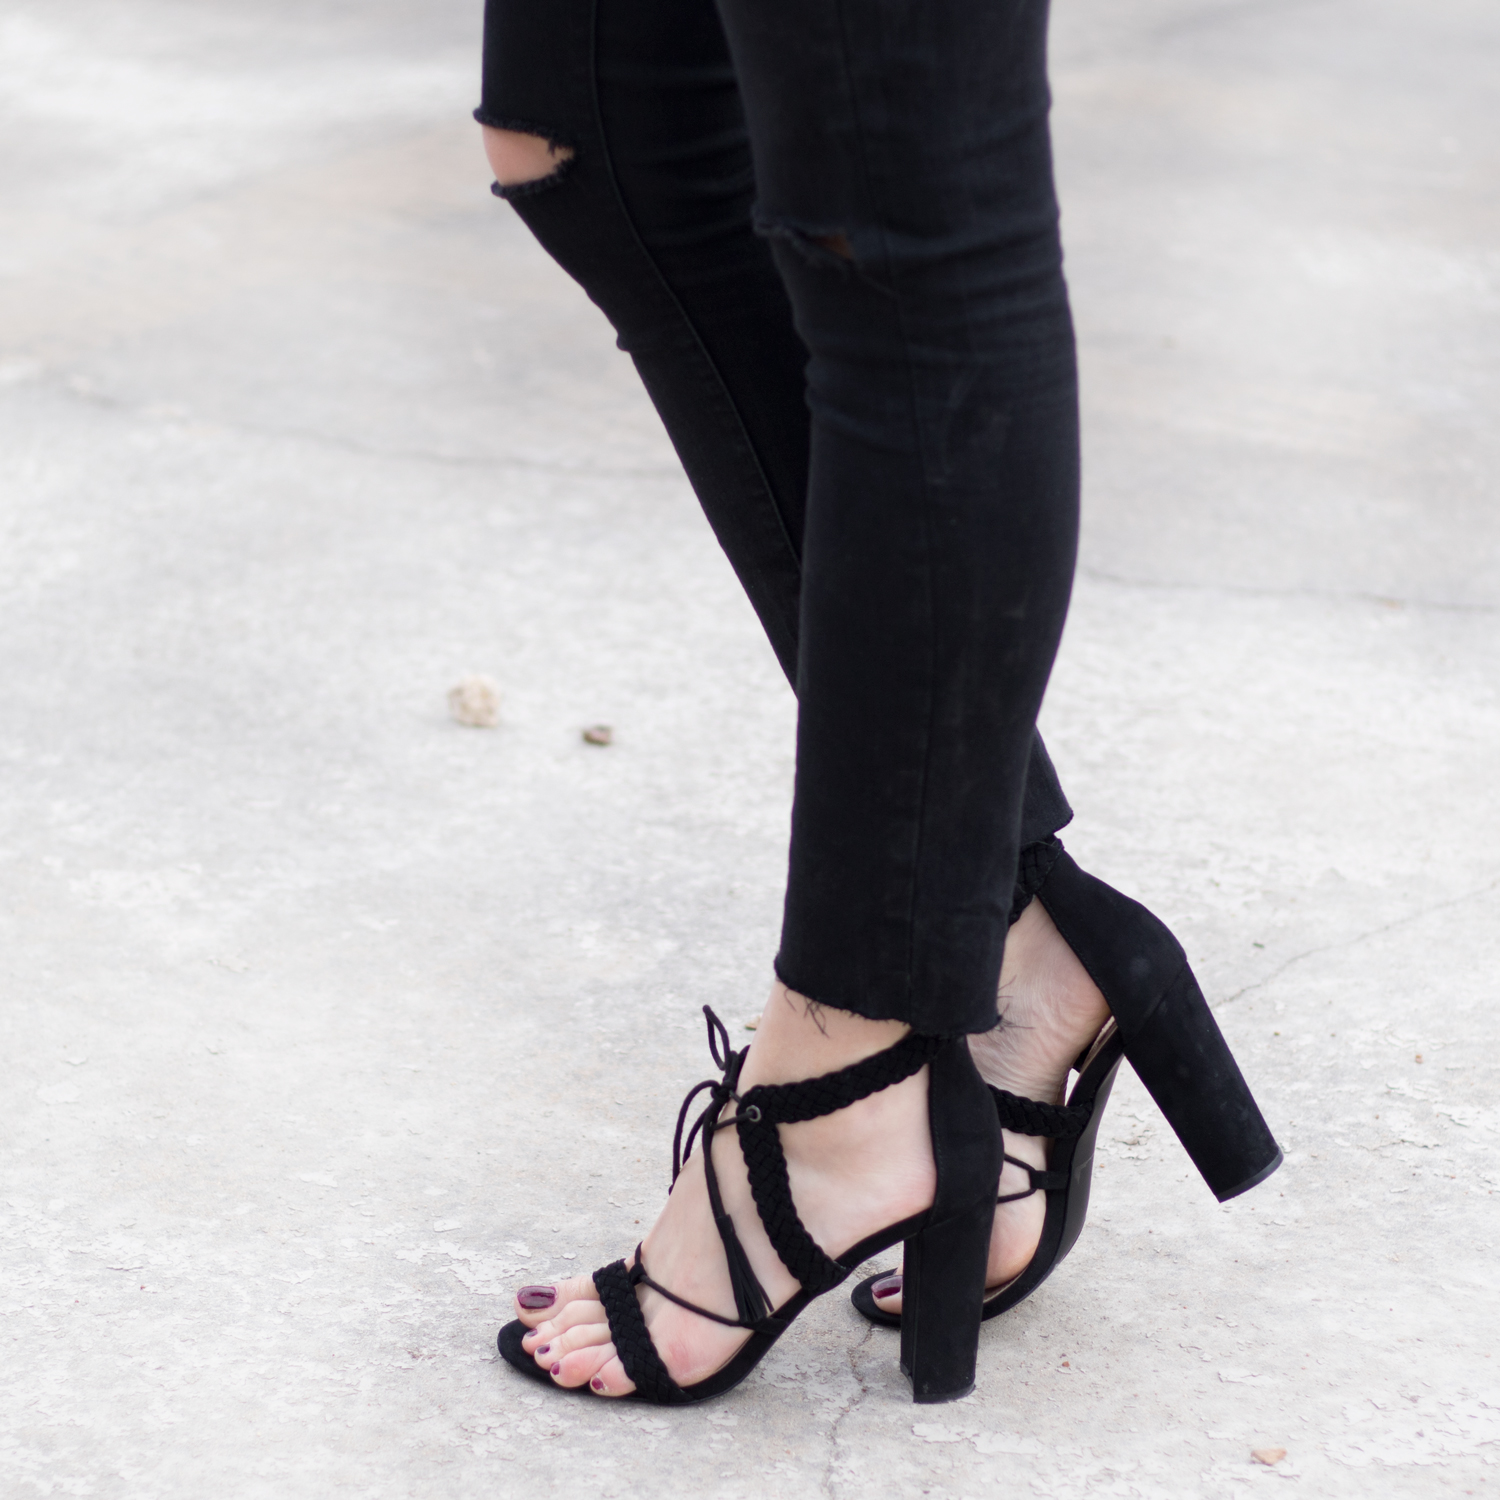 Lace-up heeled sandals